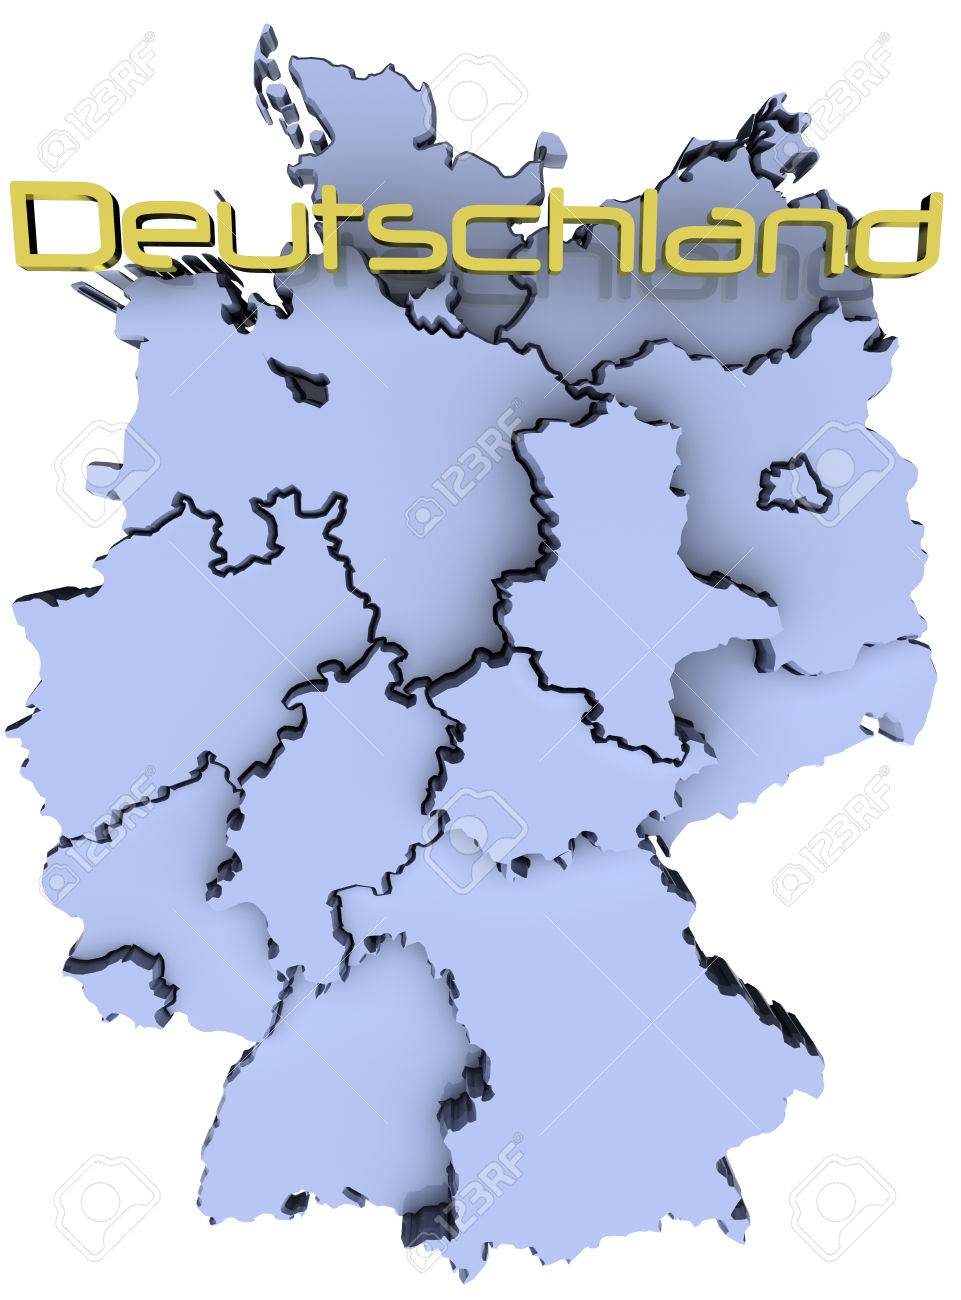 Map Of Deutschland Germany.Map Of Germany States German Republic Deutschland Name Stock Photo